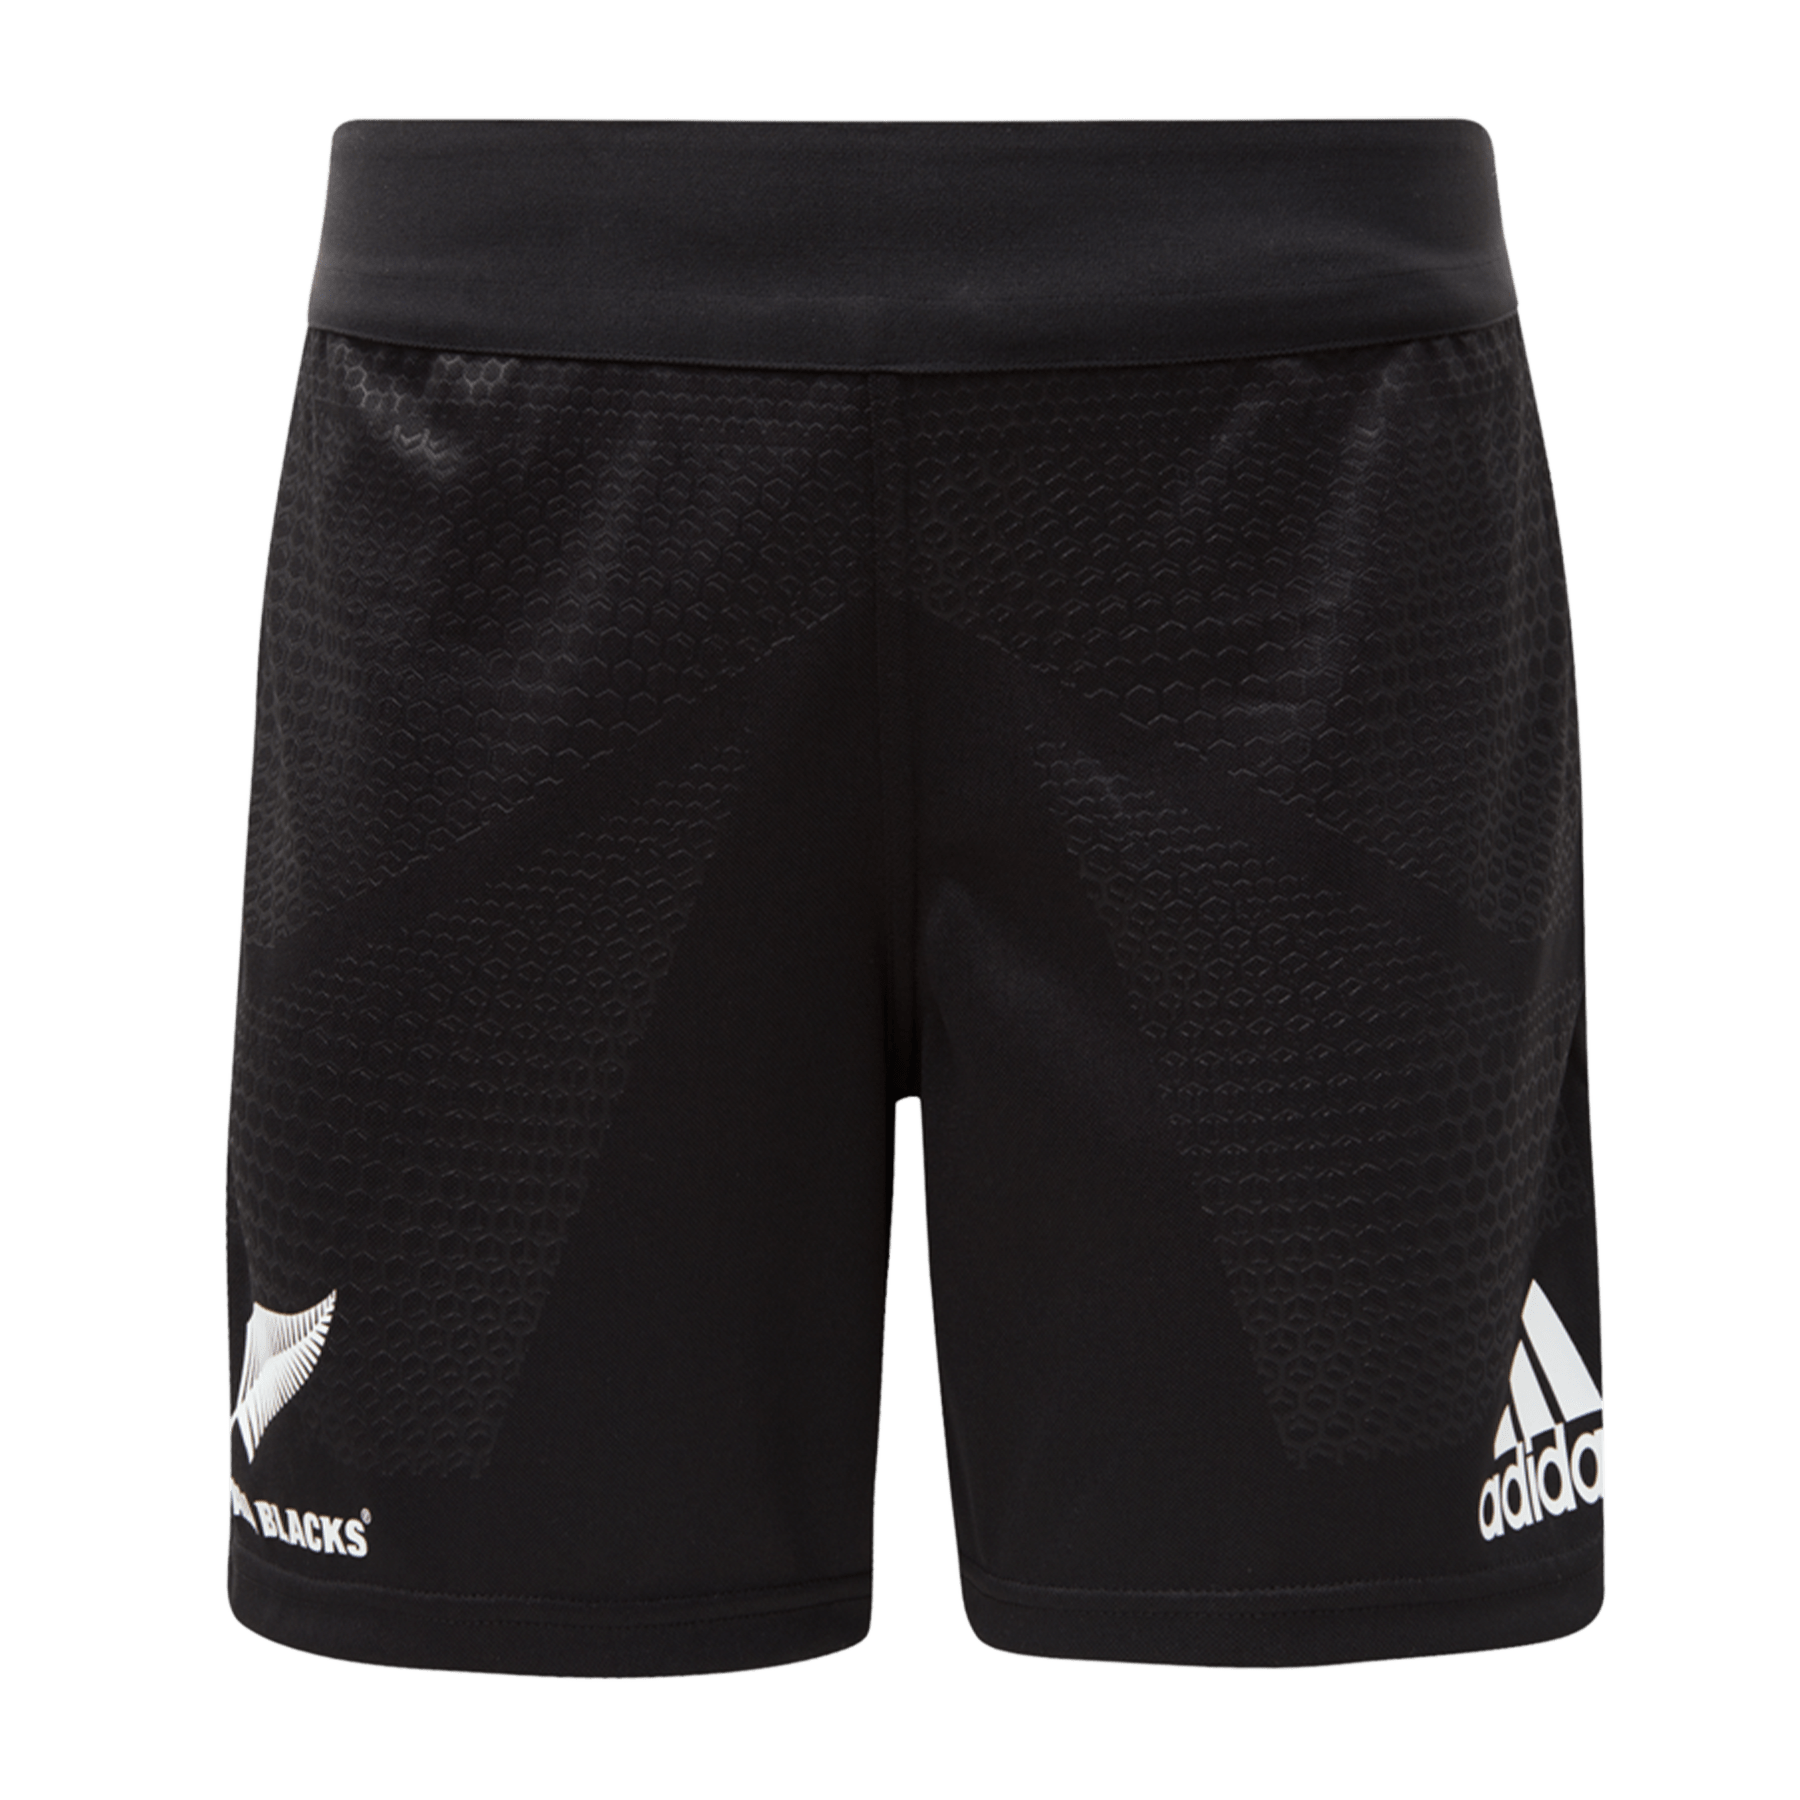 adidas All Blacks 21 Home Rugby Shorts